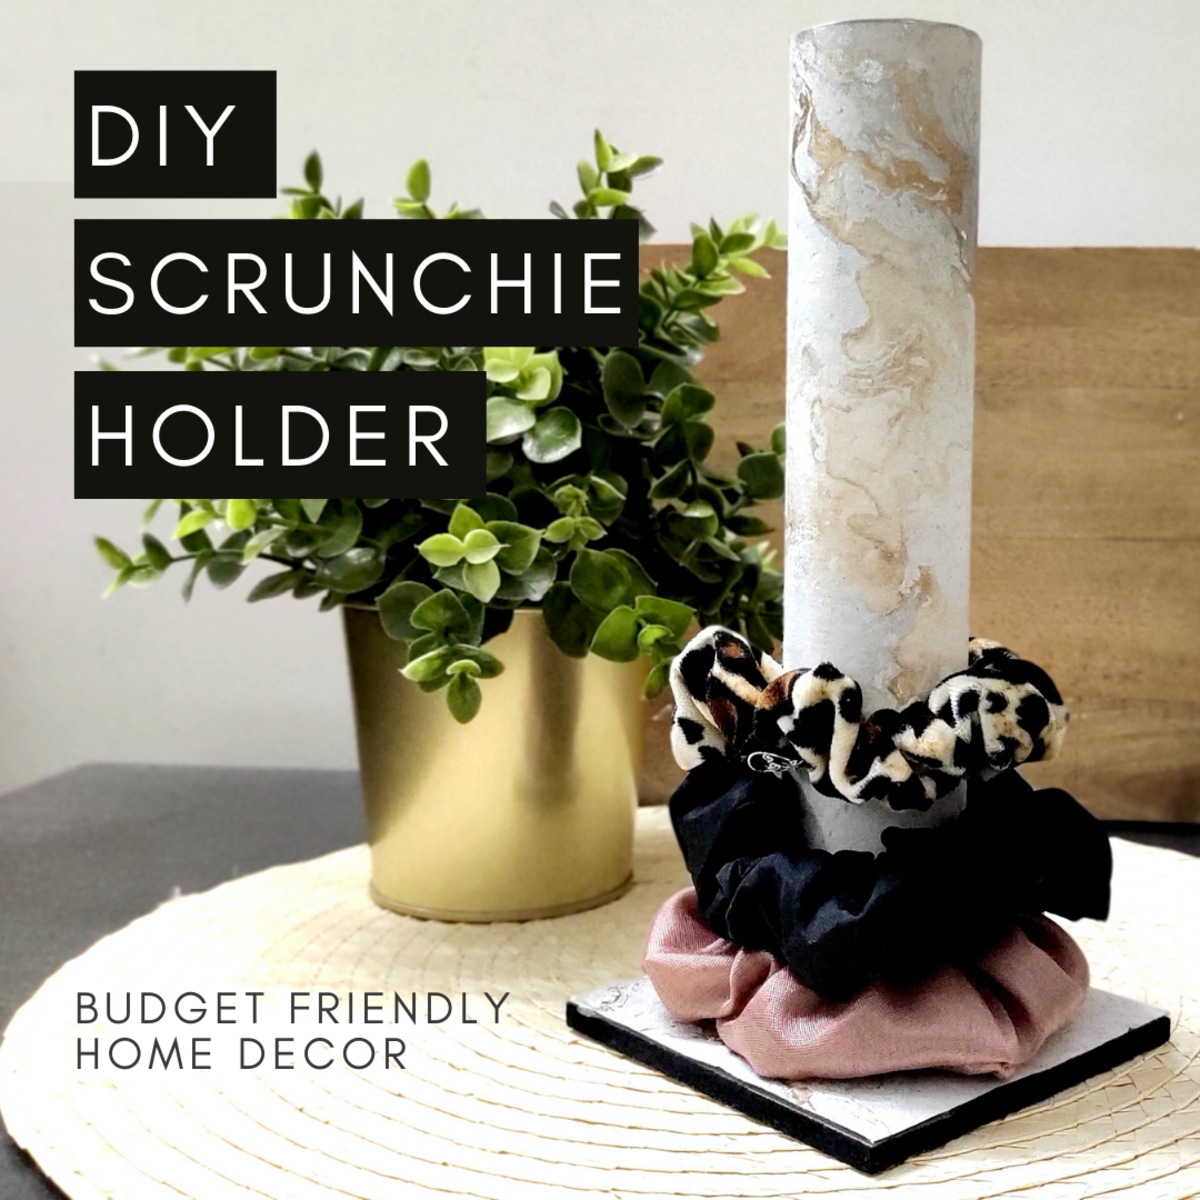 how-to-make-a-scrunchie-holder-diy-project